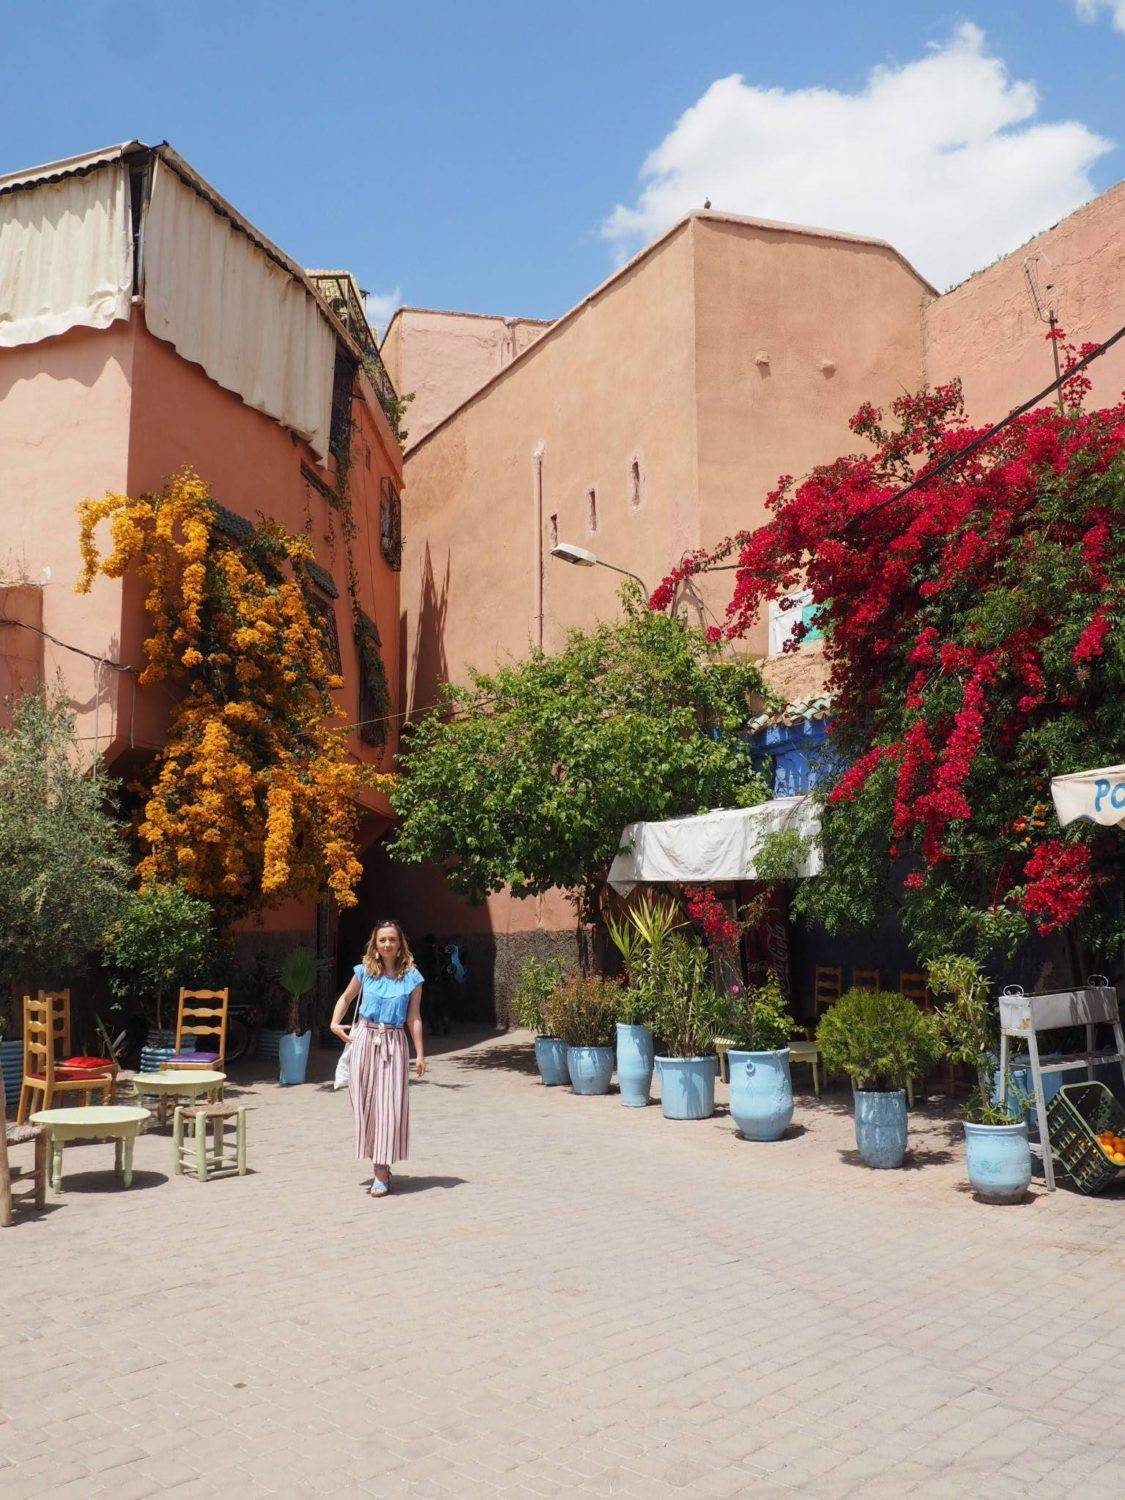 Safety tips for girls travelling to Morocco alone